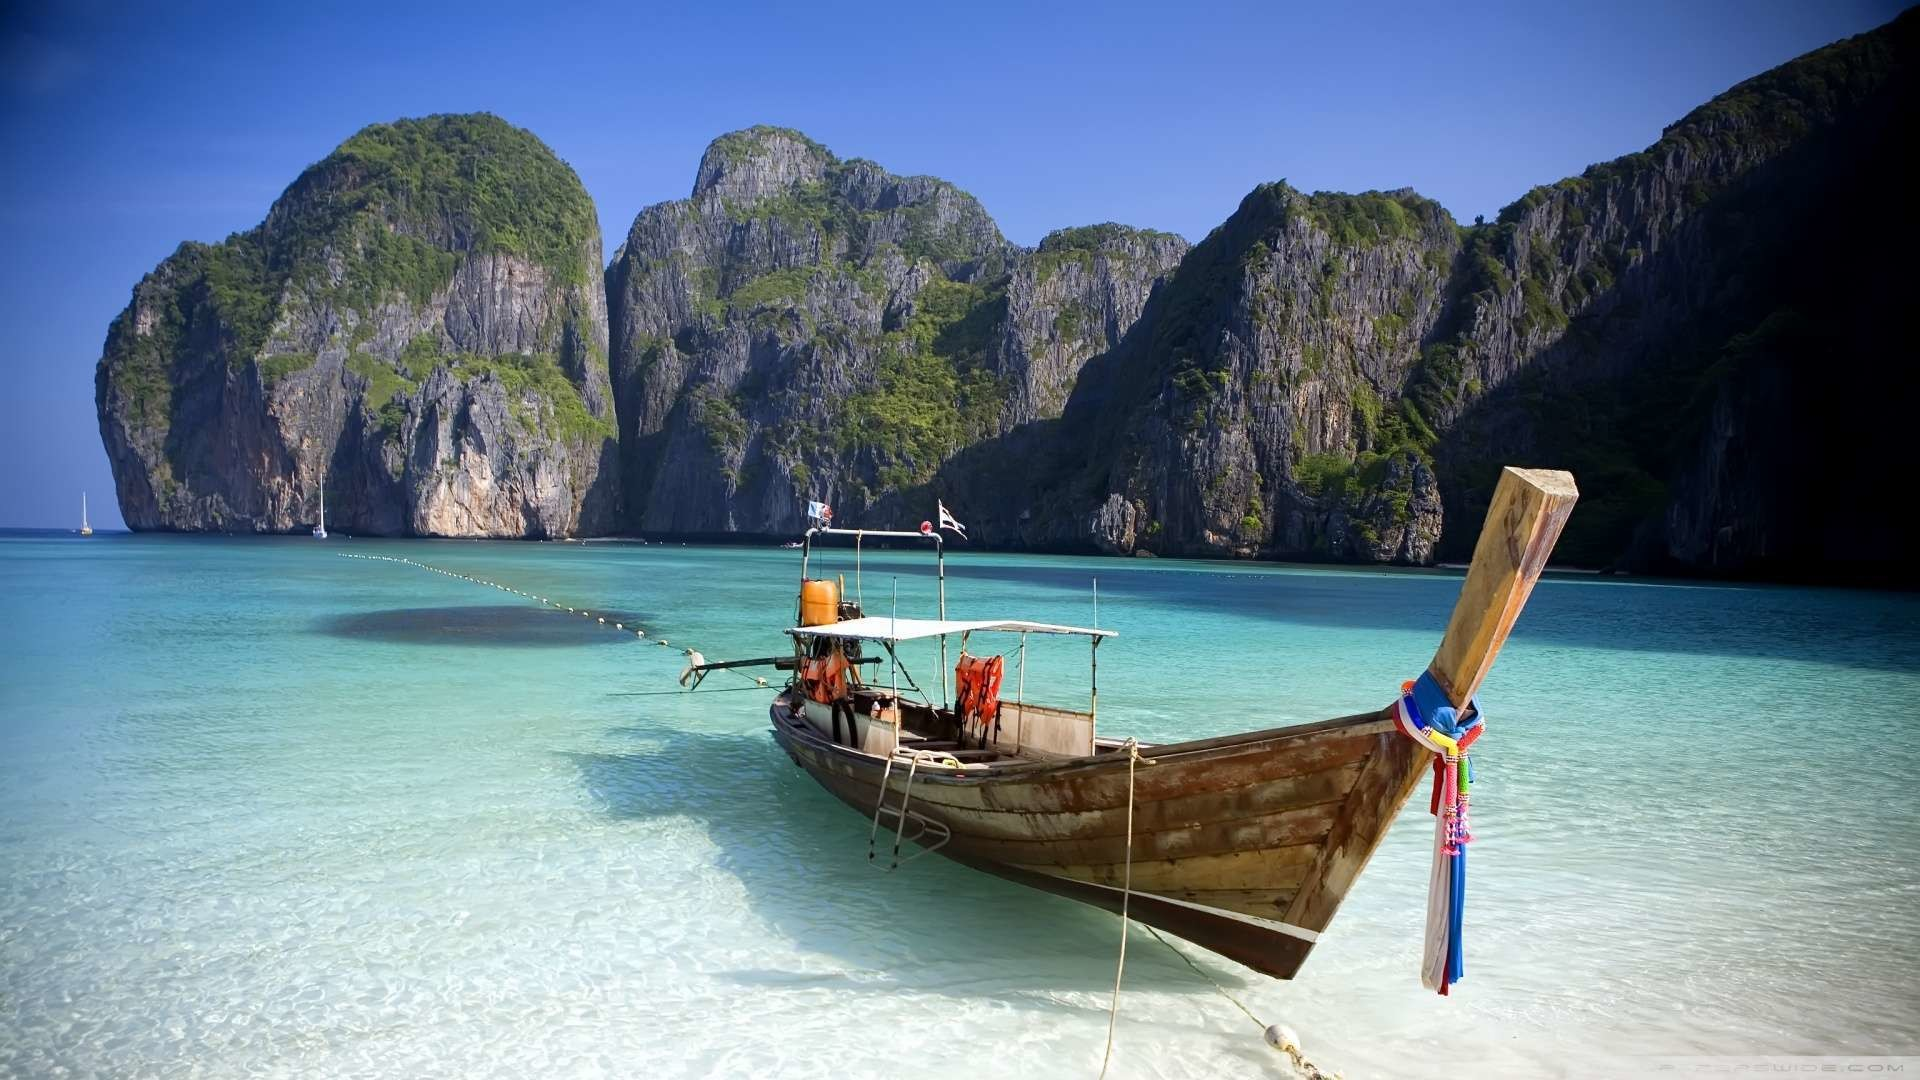 1920x1080 Thailand Beach Wallpaper 1080p HD